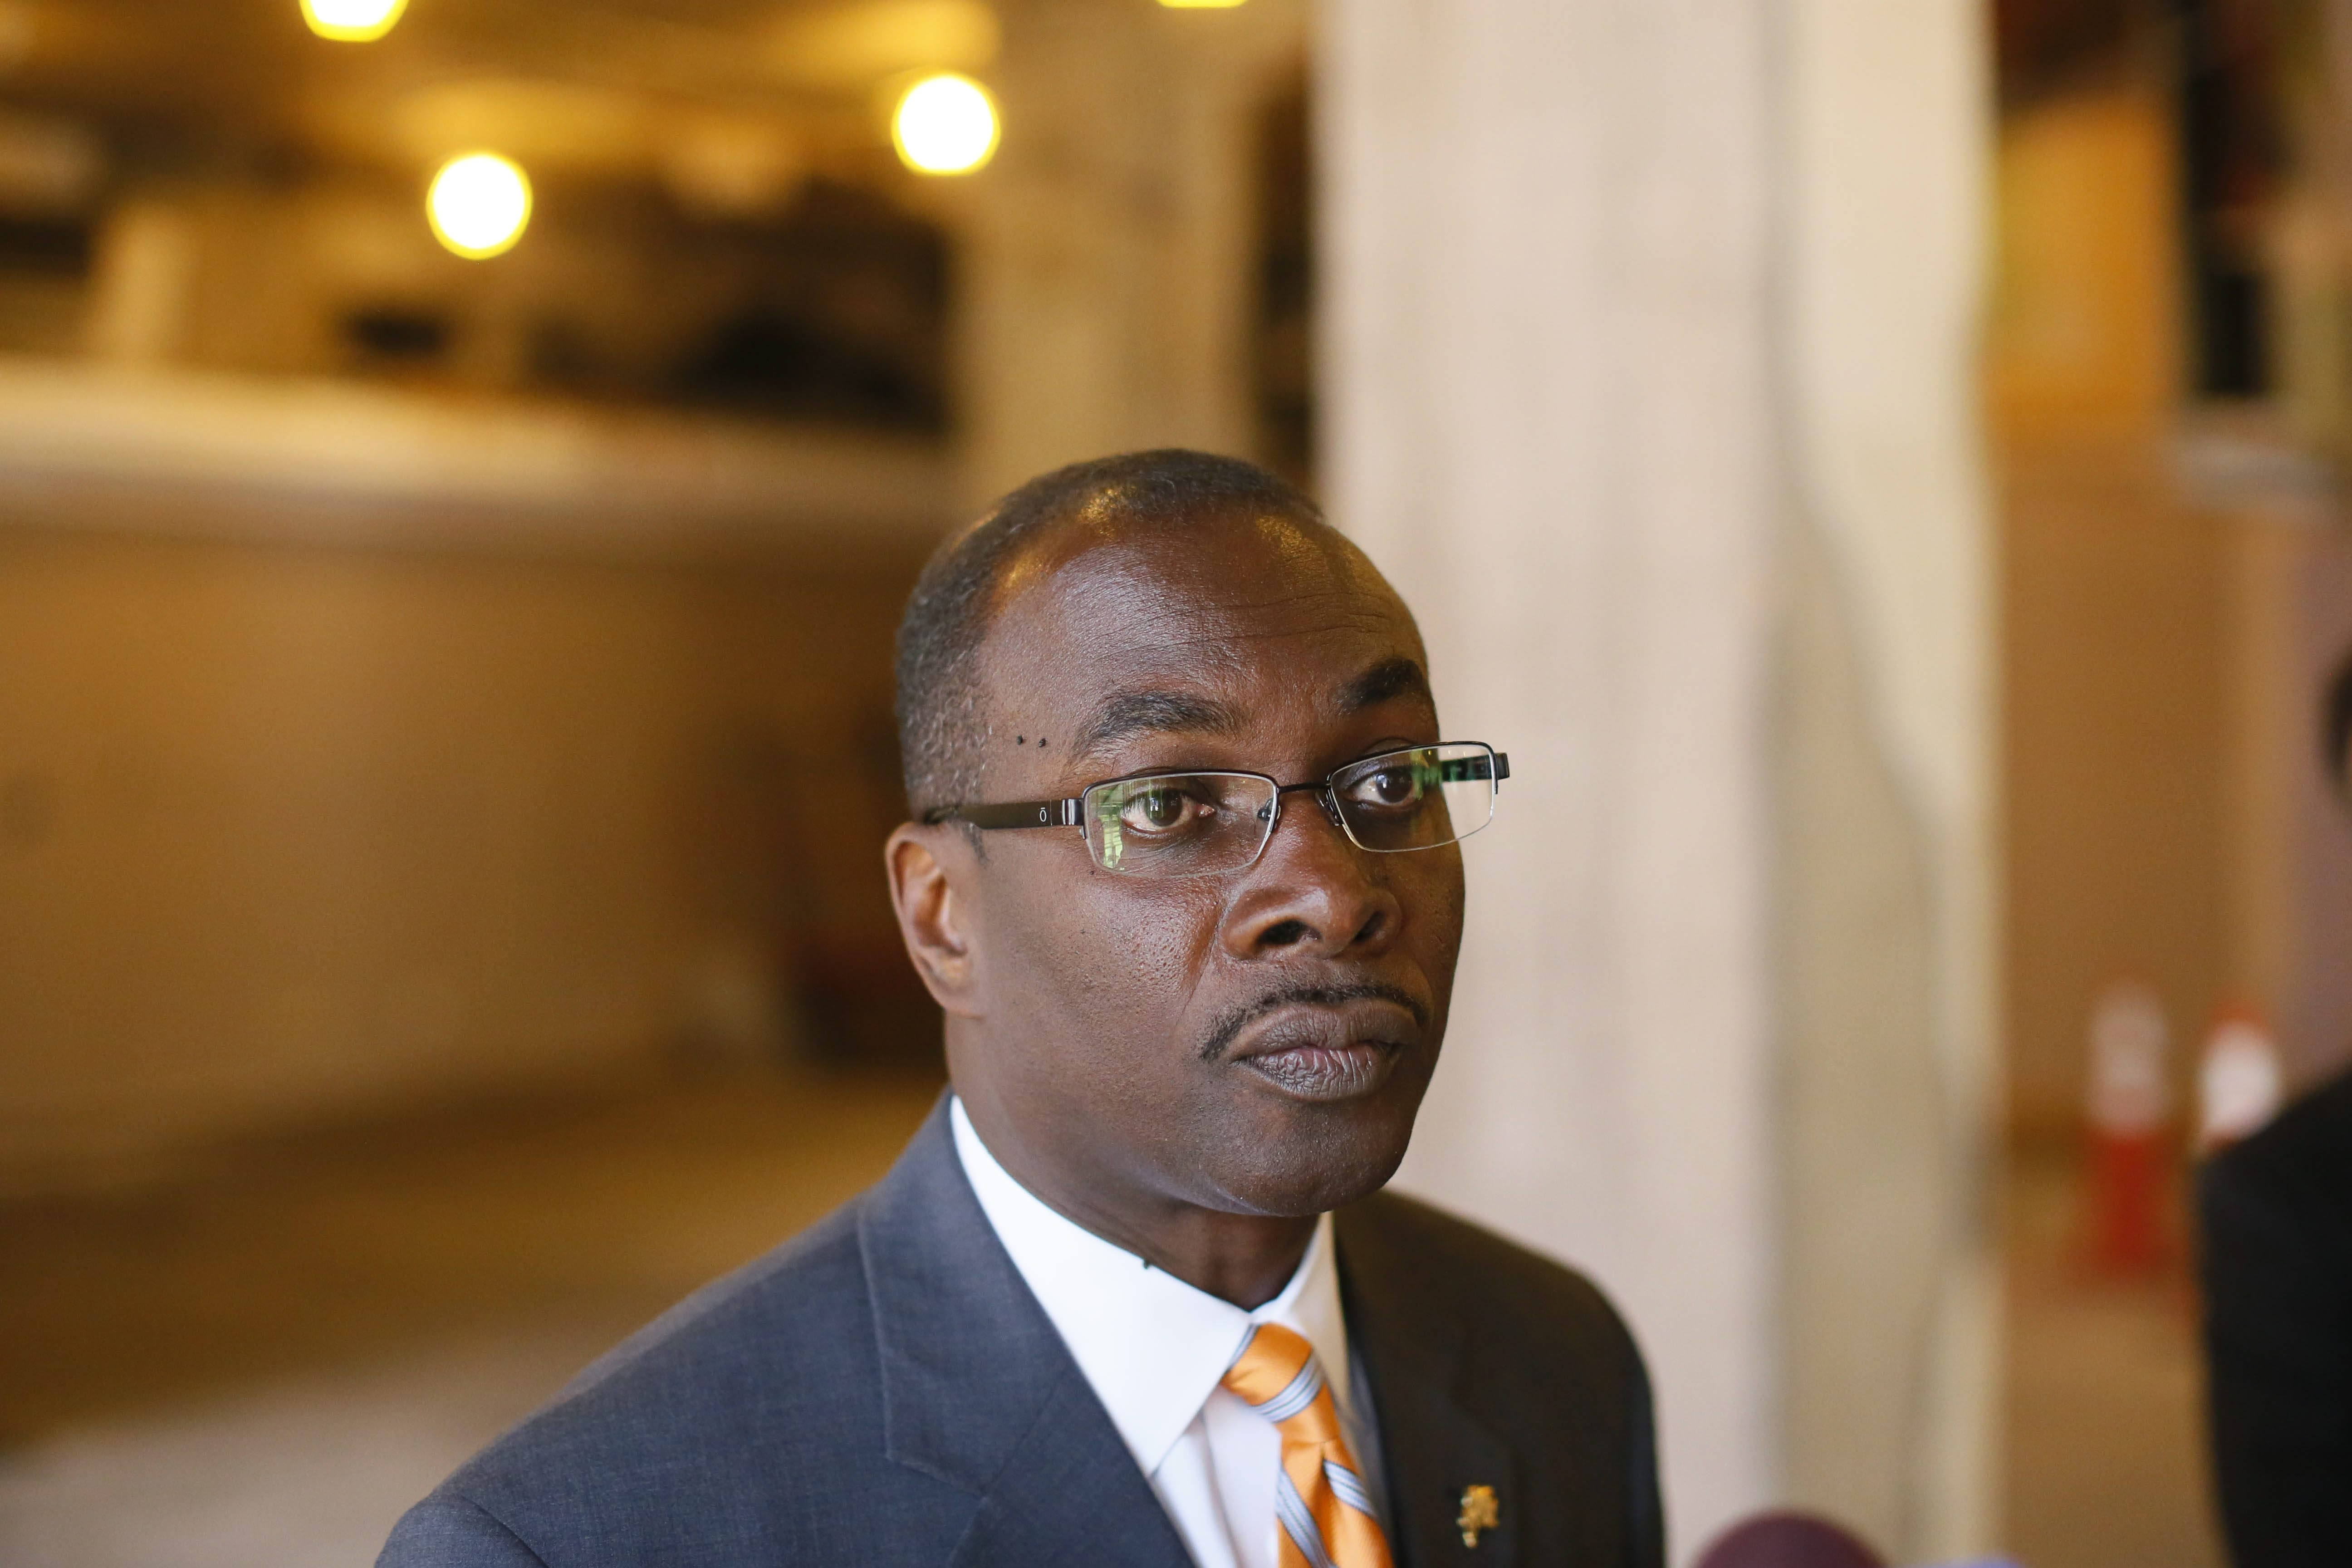 Mayor Byron W. Brown emphasized the positive, and ignored his Republican opponent, in a winning campaign.